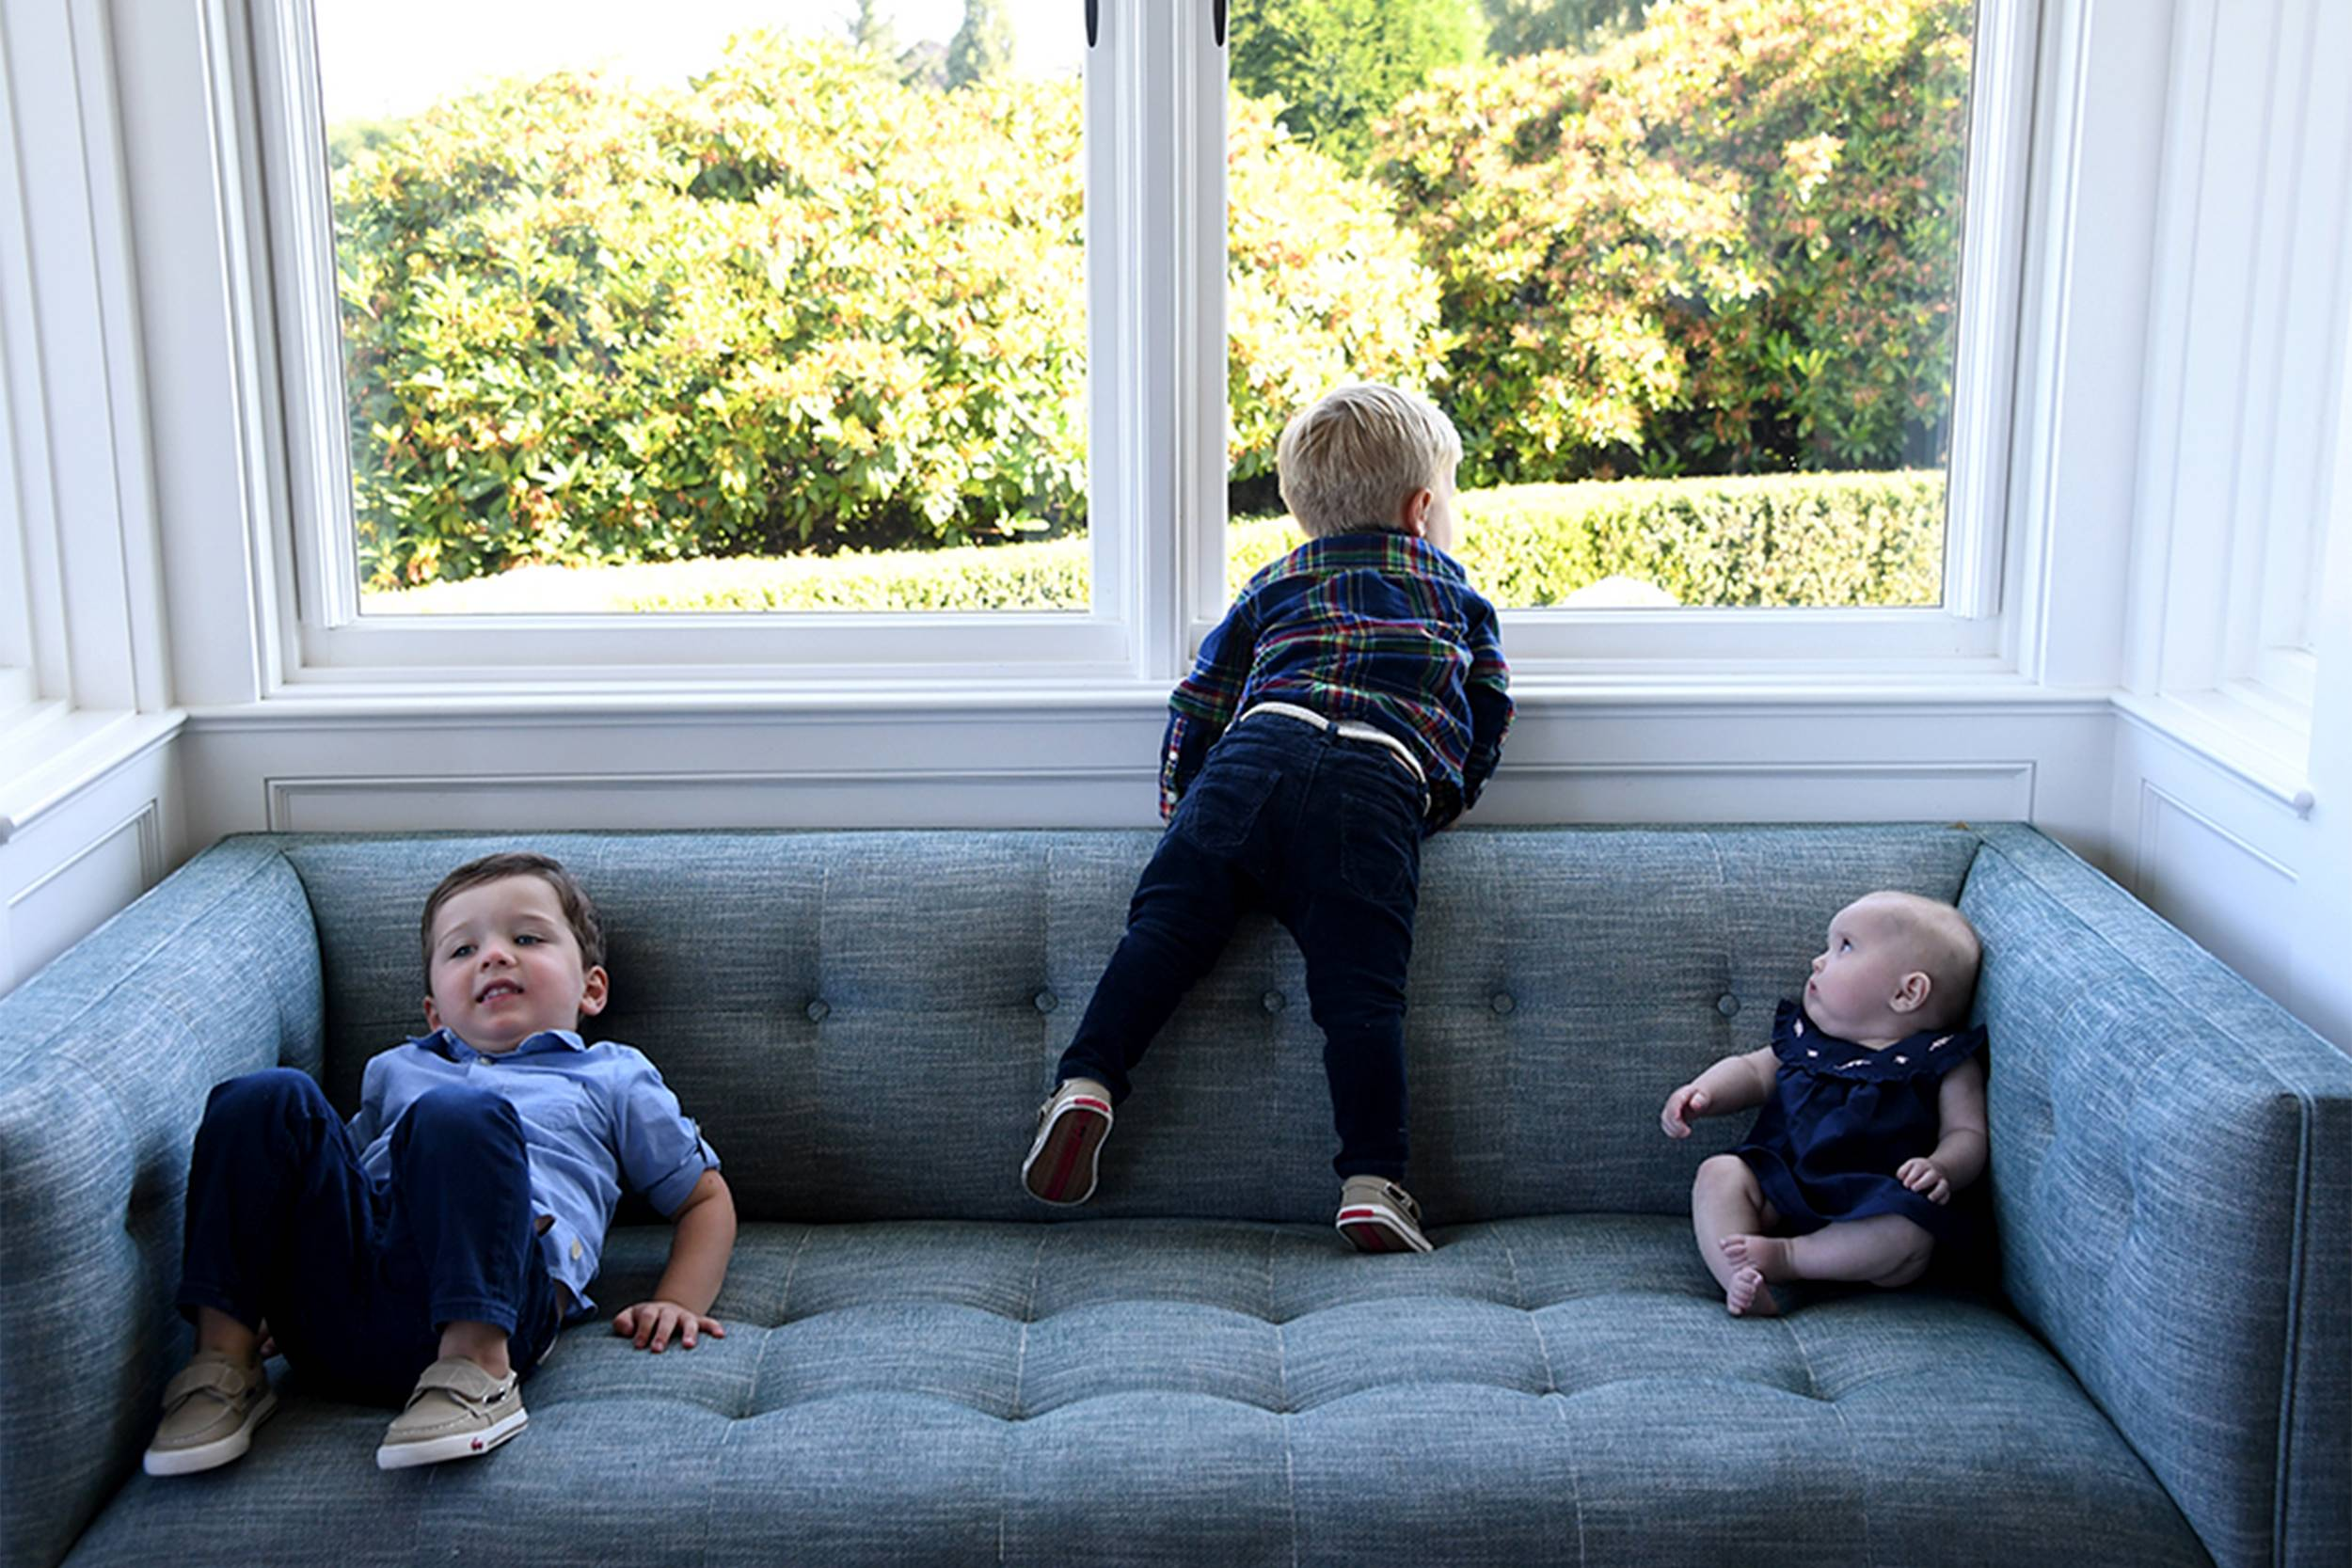 Pohlad children on couch for website.jpg